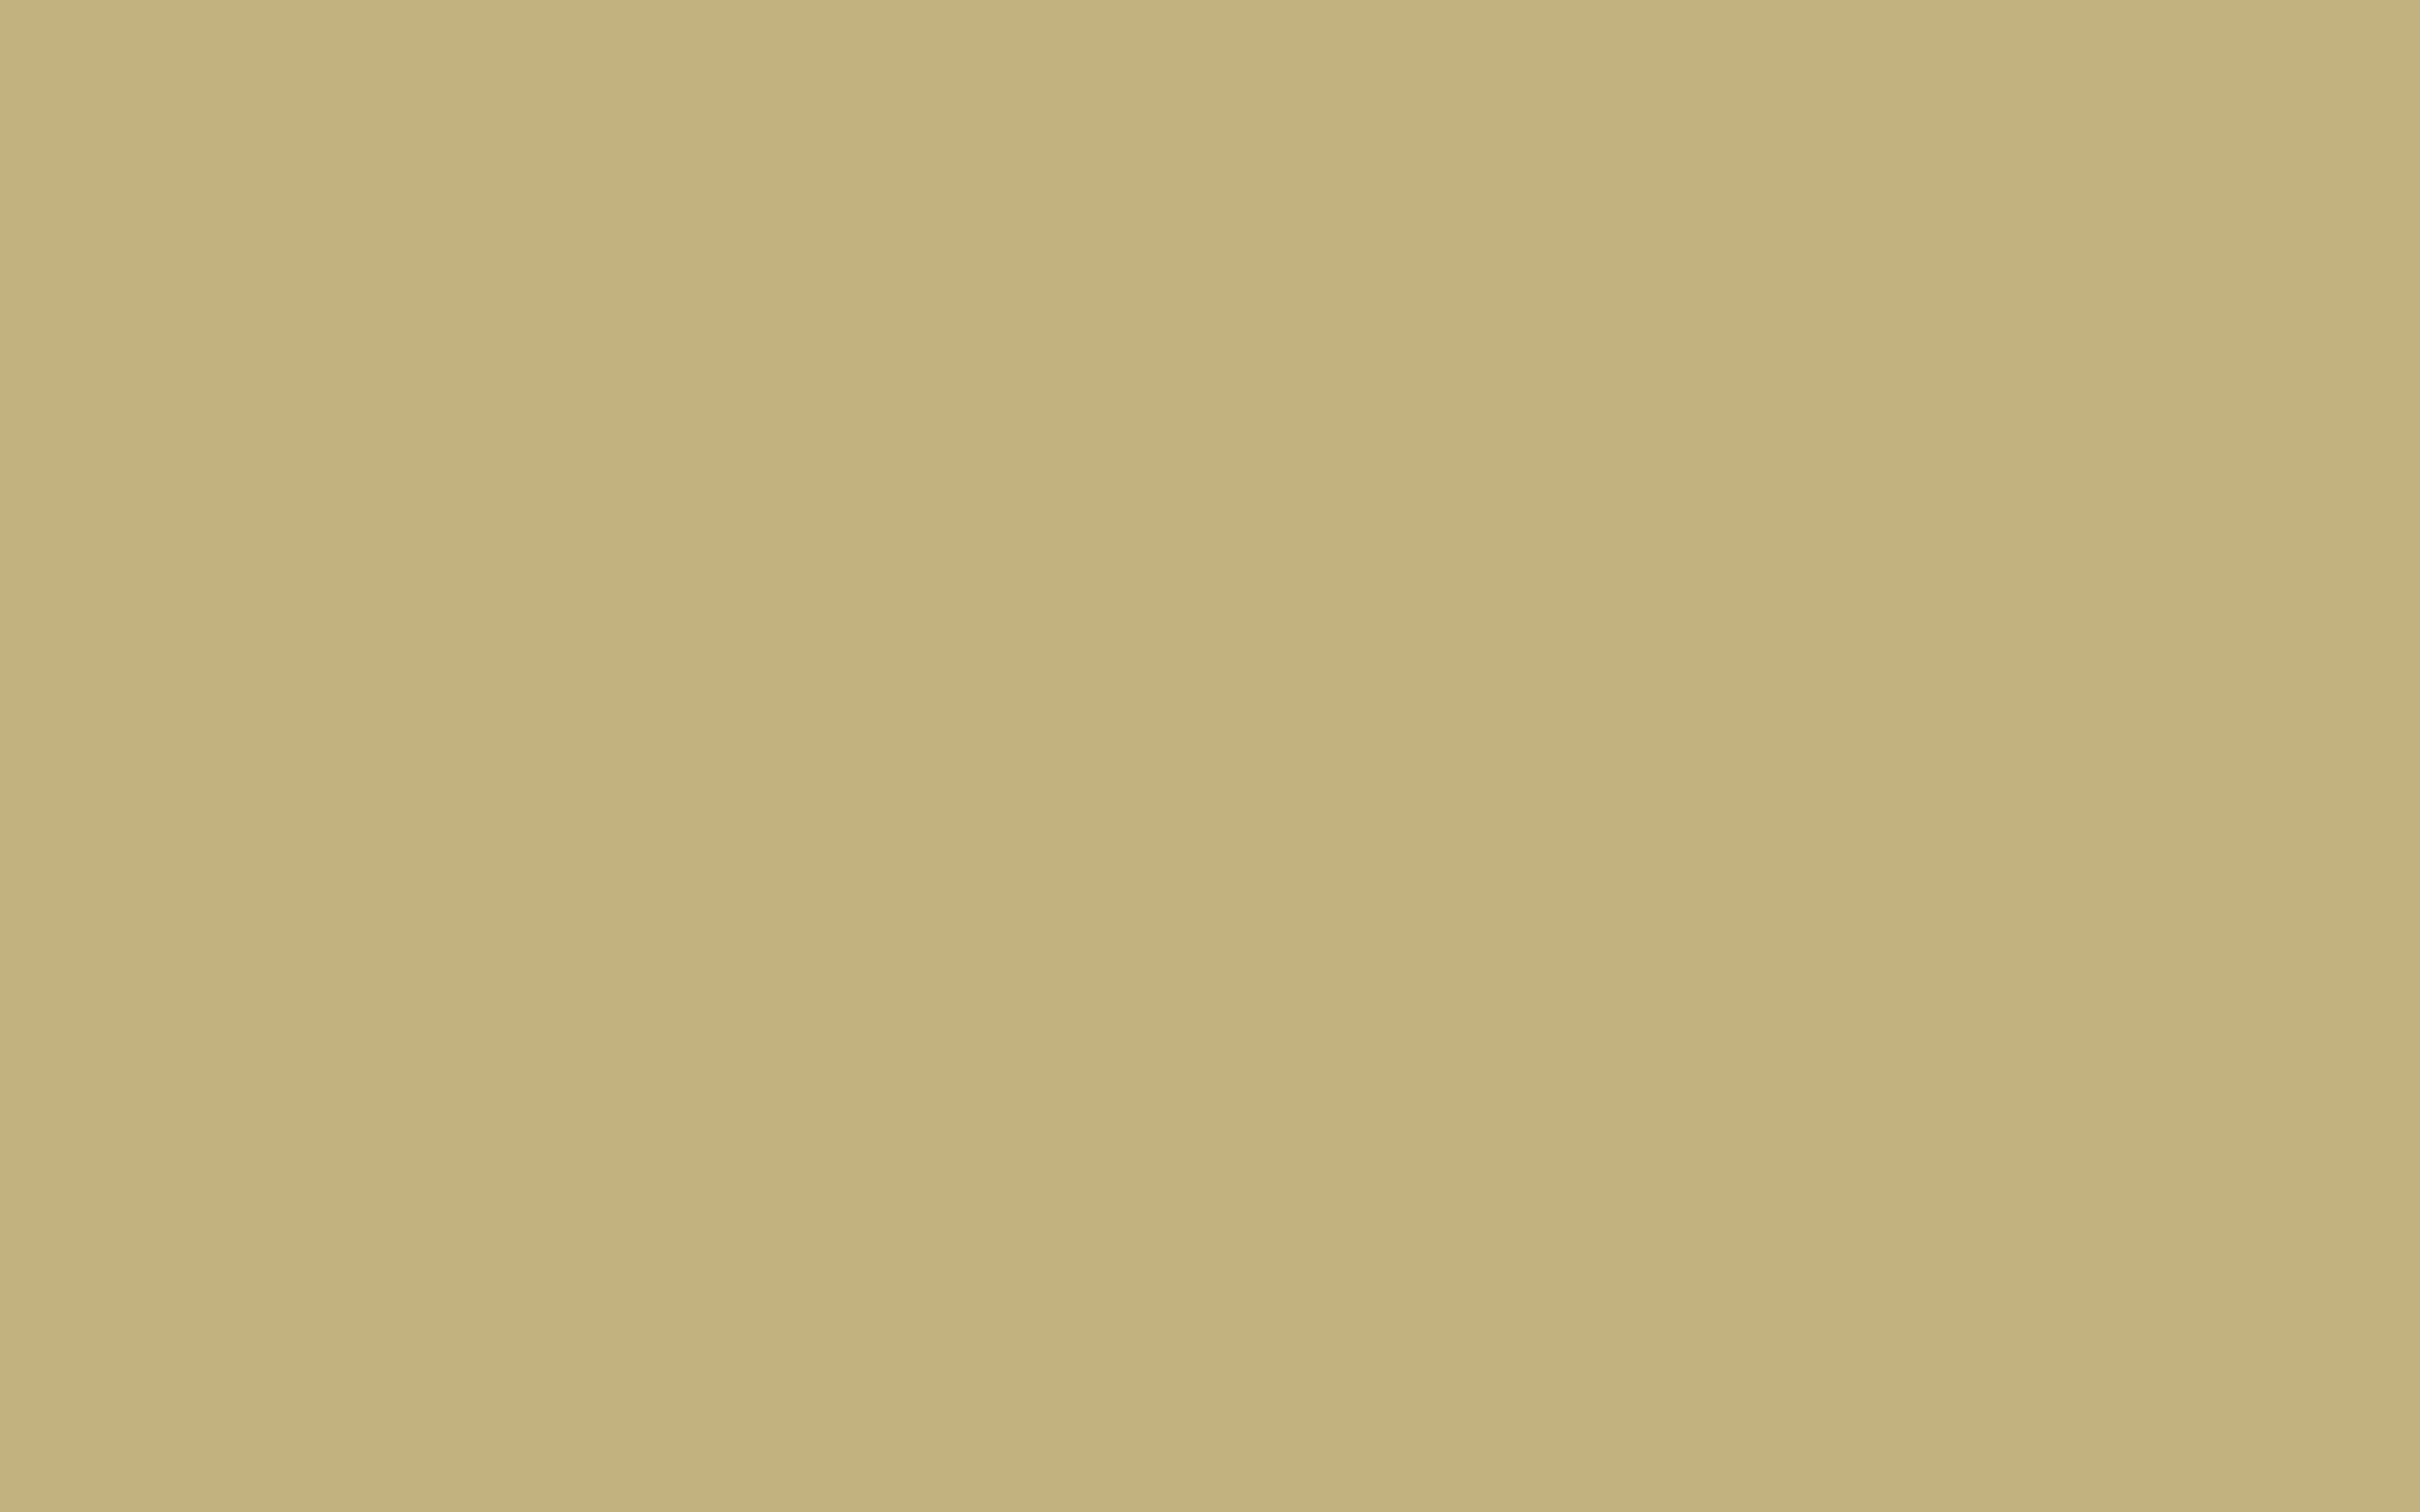 2880x1800 Sand Solid Color Background